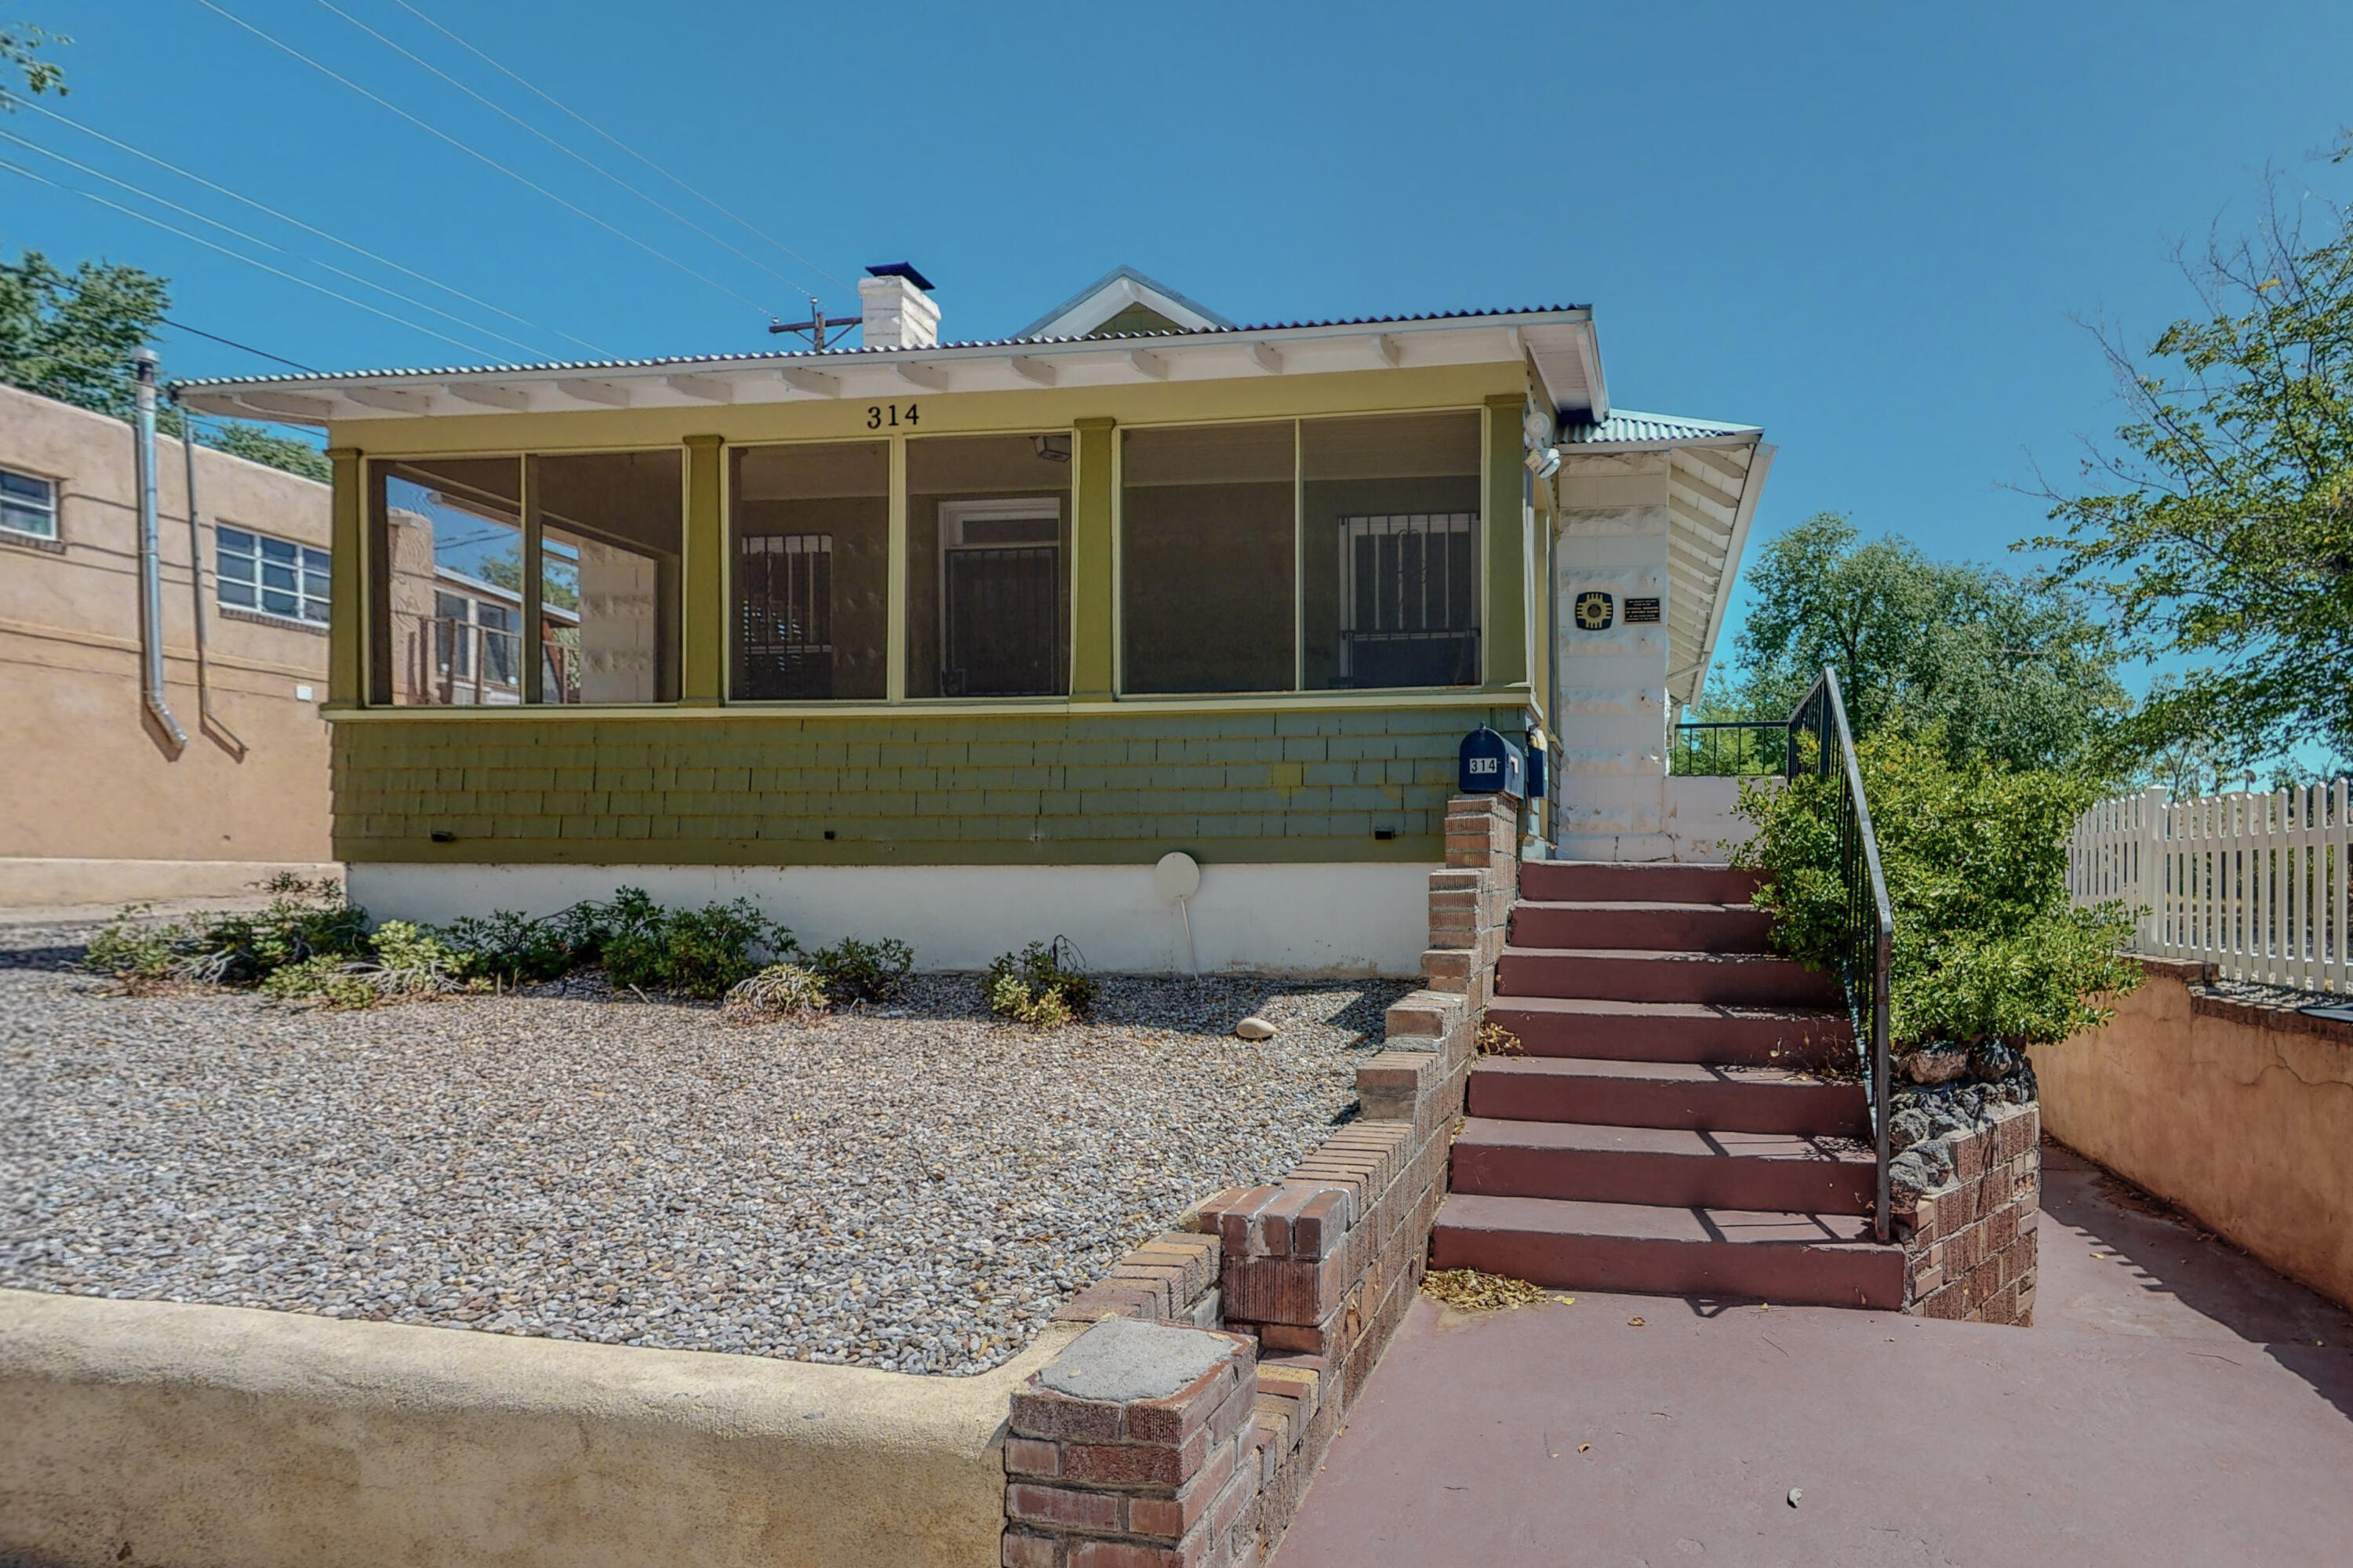 Beautiful historic home in UNM with finished basement apartment on huge double lot! Main house welcomes you large screened in front porch. Hardwood floors throughout, bright and open living room with gas fireplace. Dining. room leading to galley kitchen with butcher block countertops. 2 bedrooms, jack and Jill bath with claw foot tub. Finished basement apartment with painted concrete floors, small kitchen and dining area, 3/4 bath and open loft style living/bedroom space. Detached 1 car garage all this on a huge double lot with potential to add additional units for added income. Zoned RM-L. The property is located directly across from Presbyterian hospital and could be a fantastic airbnb or furnished rental for traveling nurses or the film industry!